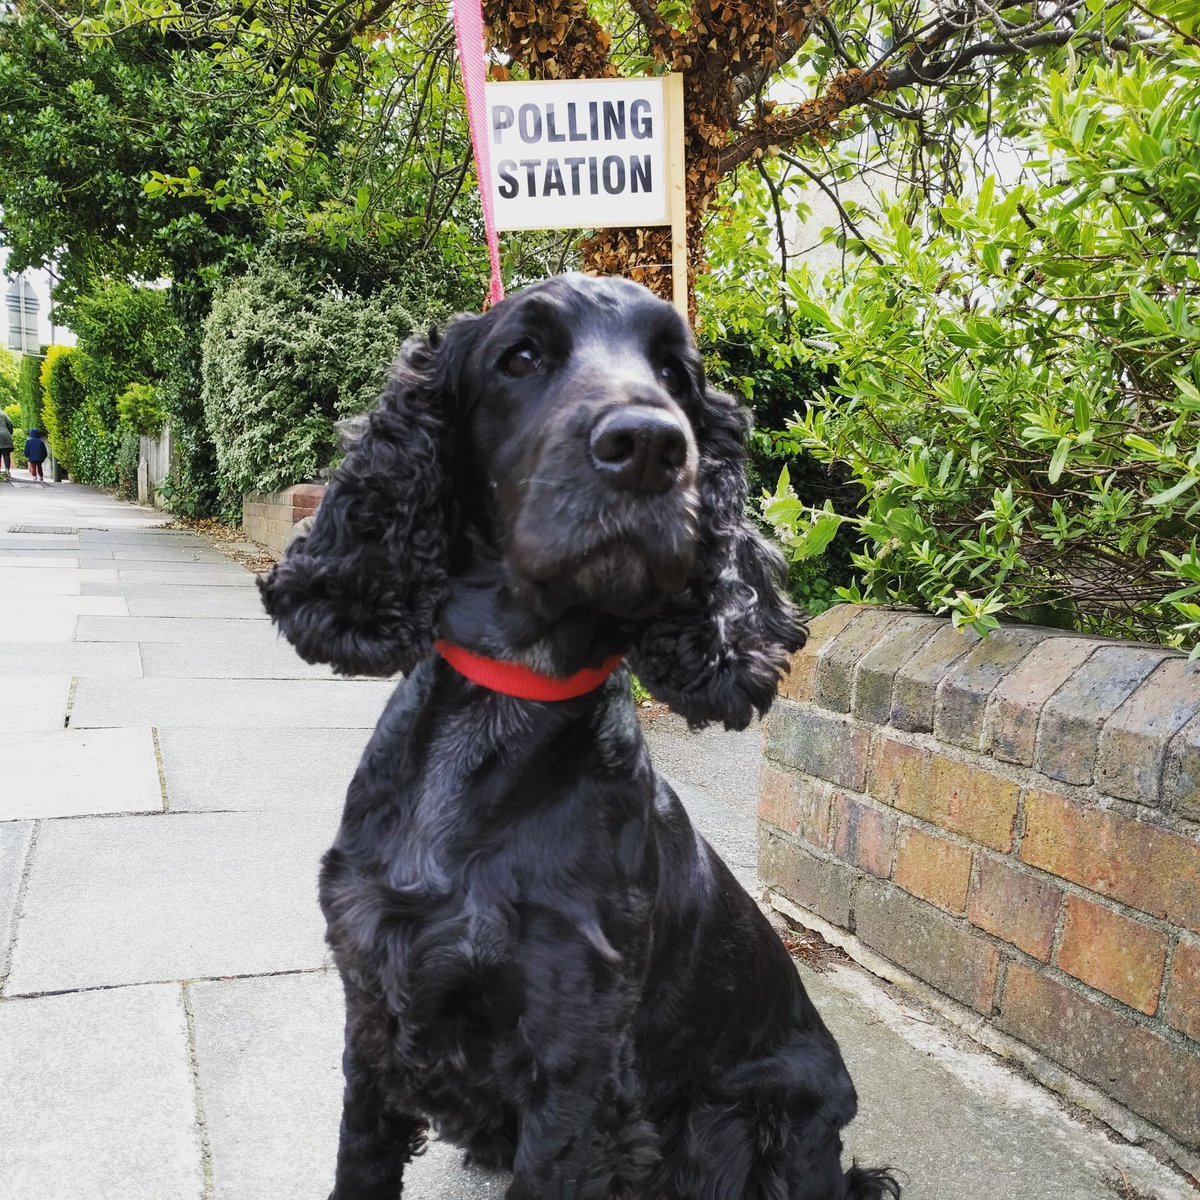 Dont forget to vote today! #dogsatpollingstations #GeneralElection17